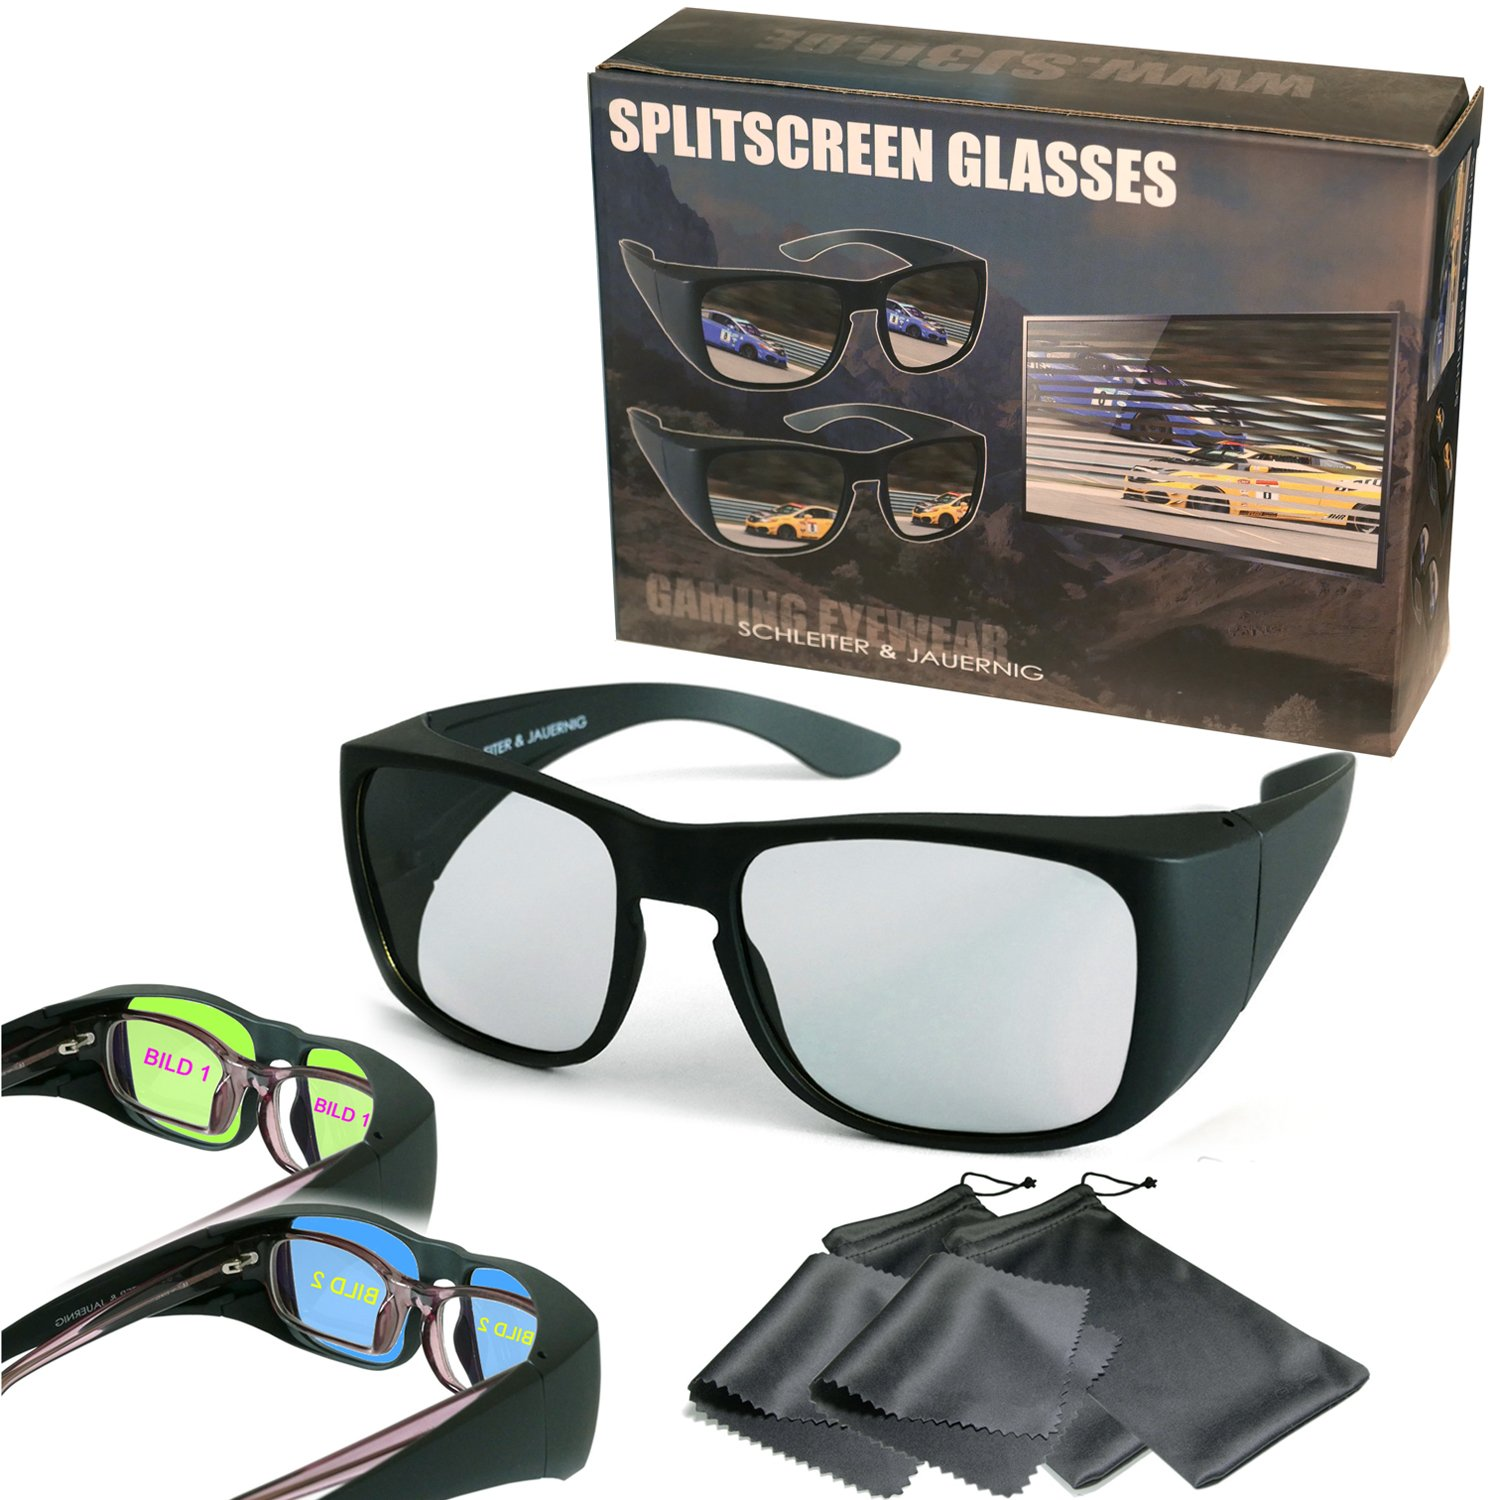 2 Player Split Screen Gaming Overglasses Passive - Circular Polarized - Wear over optical glasses - For Dual Play by LG, Full Screen Gaming by Philips, SimulView by Sony, Dual Gaming by Grundig etc